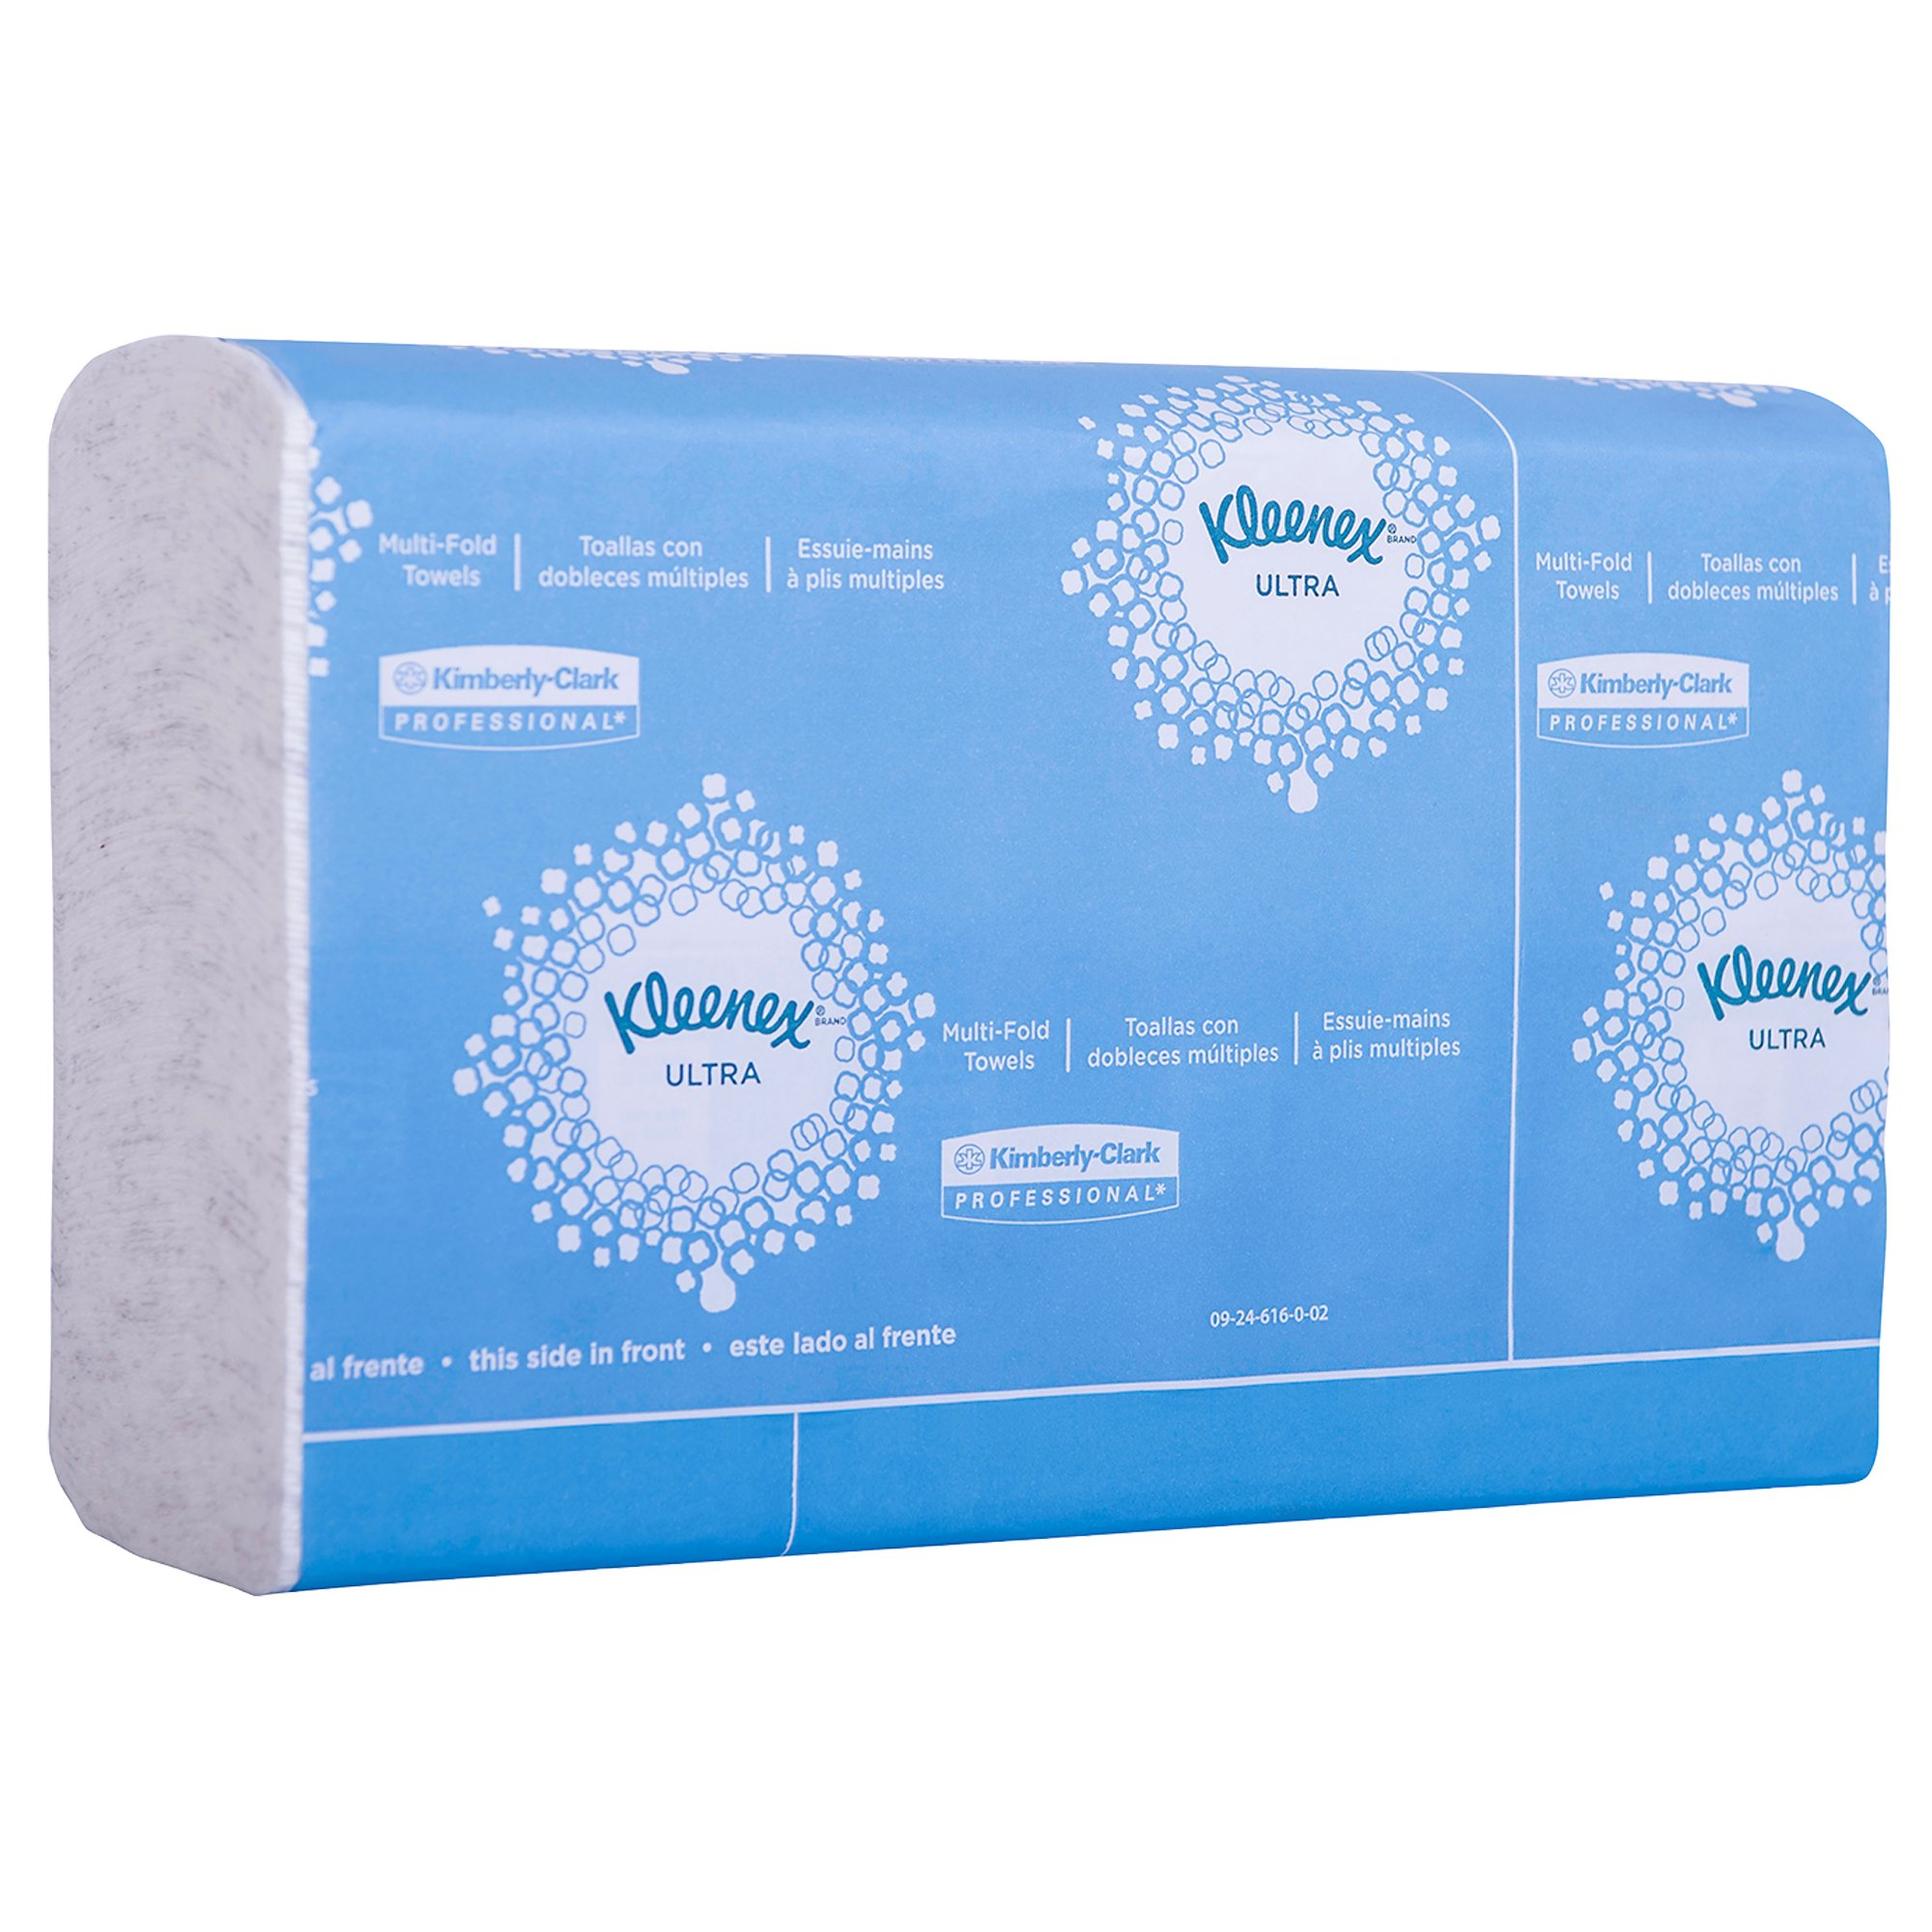 "Kleenex Reveal Multi-Fold Hand Towels (46321), 8"" x 9.4"", For Kleenex Reveal Countertop System Dispenser, White, 2,400 Towels/Case, 16 Packs of 150 Paper Towels"